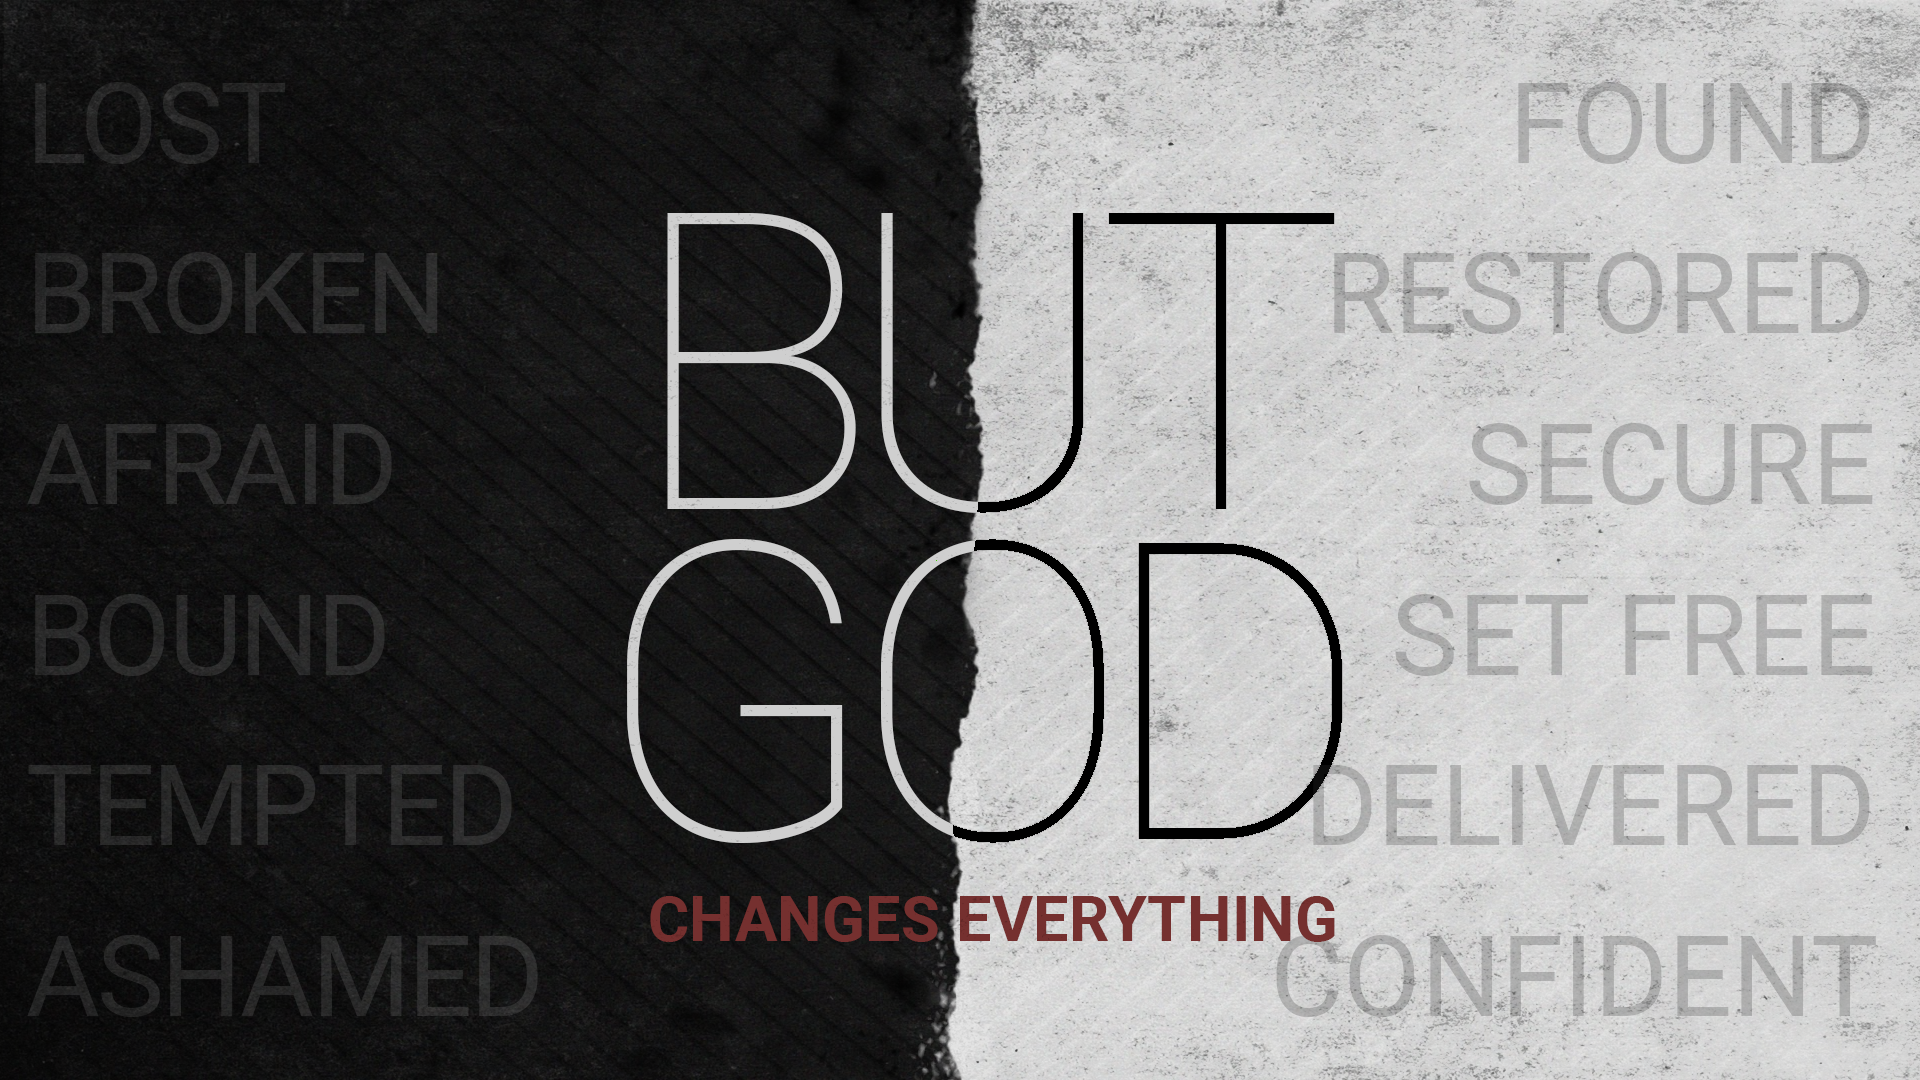 But God: Changes Everything